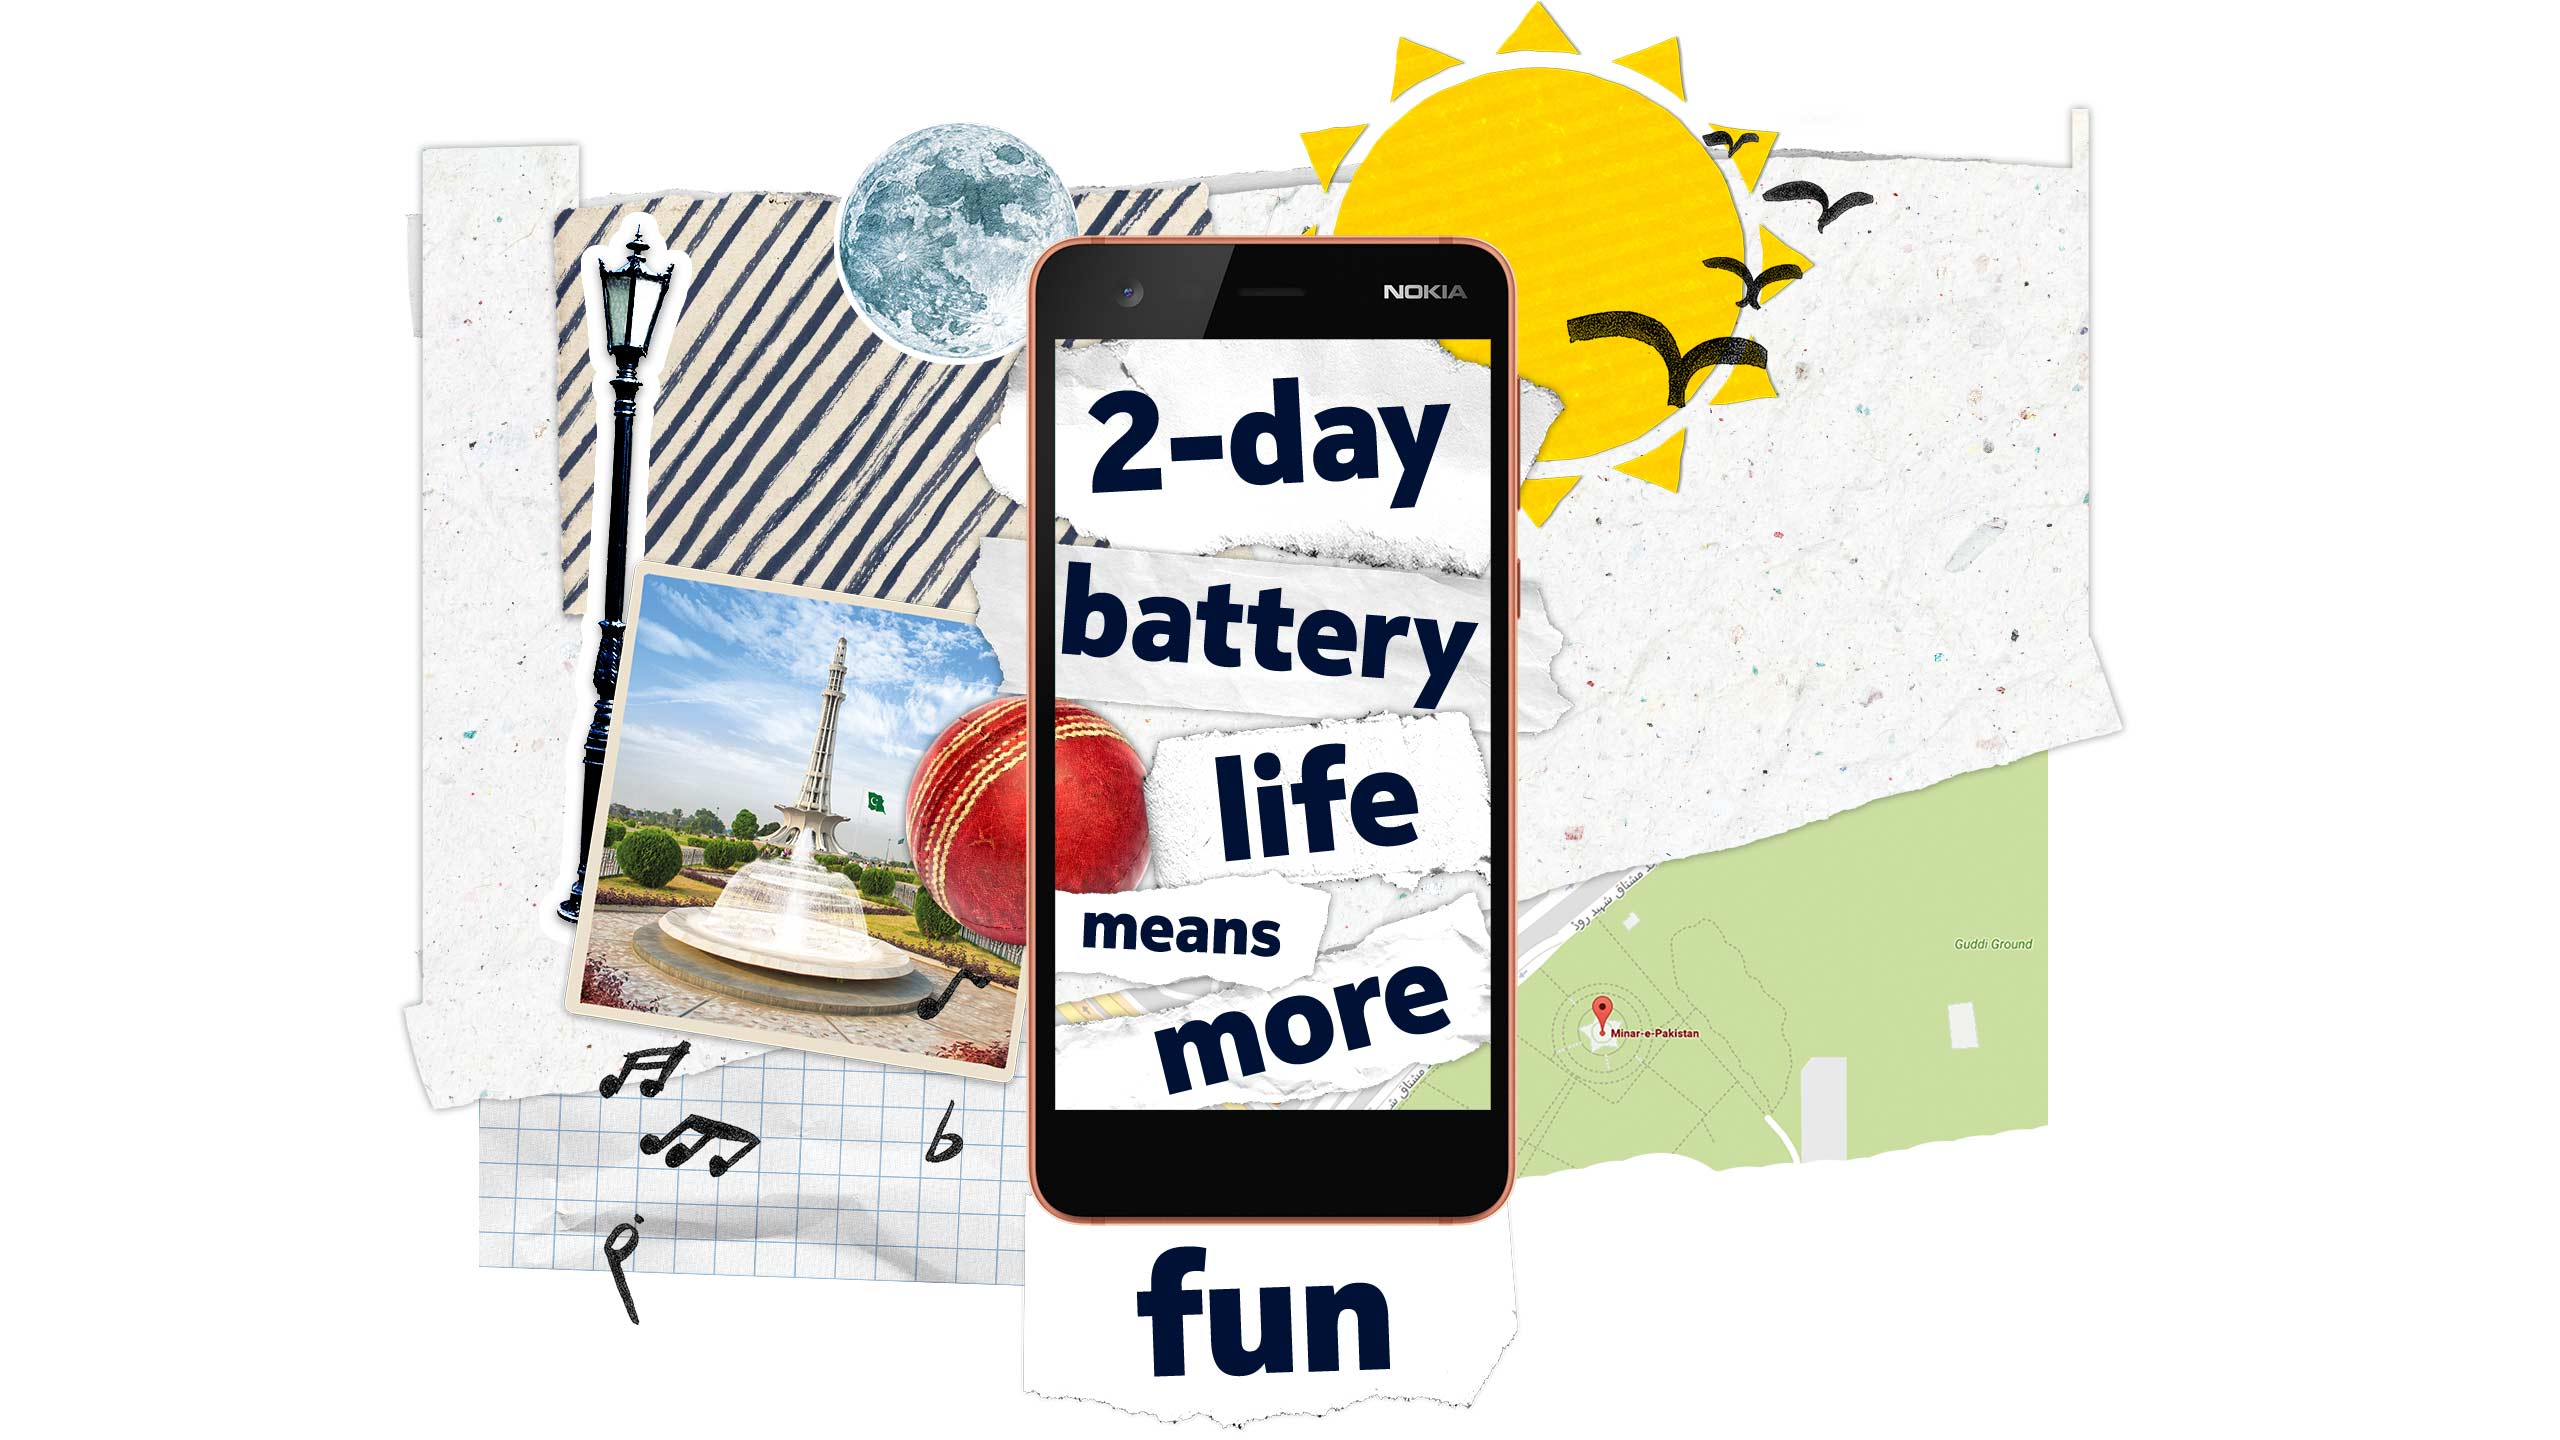 nokia_2-campaign-the_battery-PAKISTAN_english.jpg